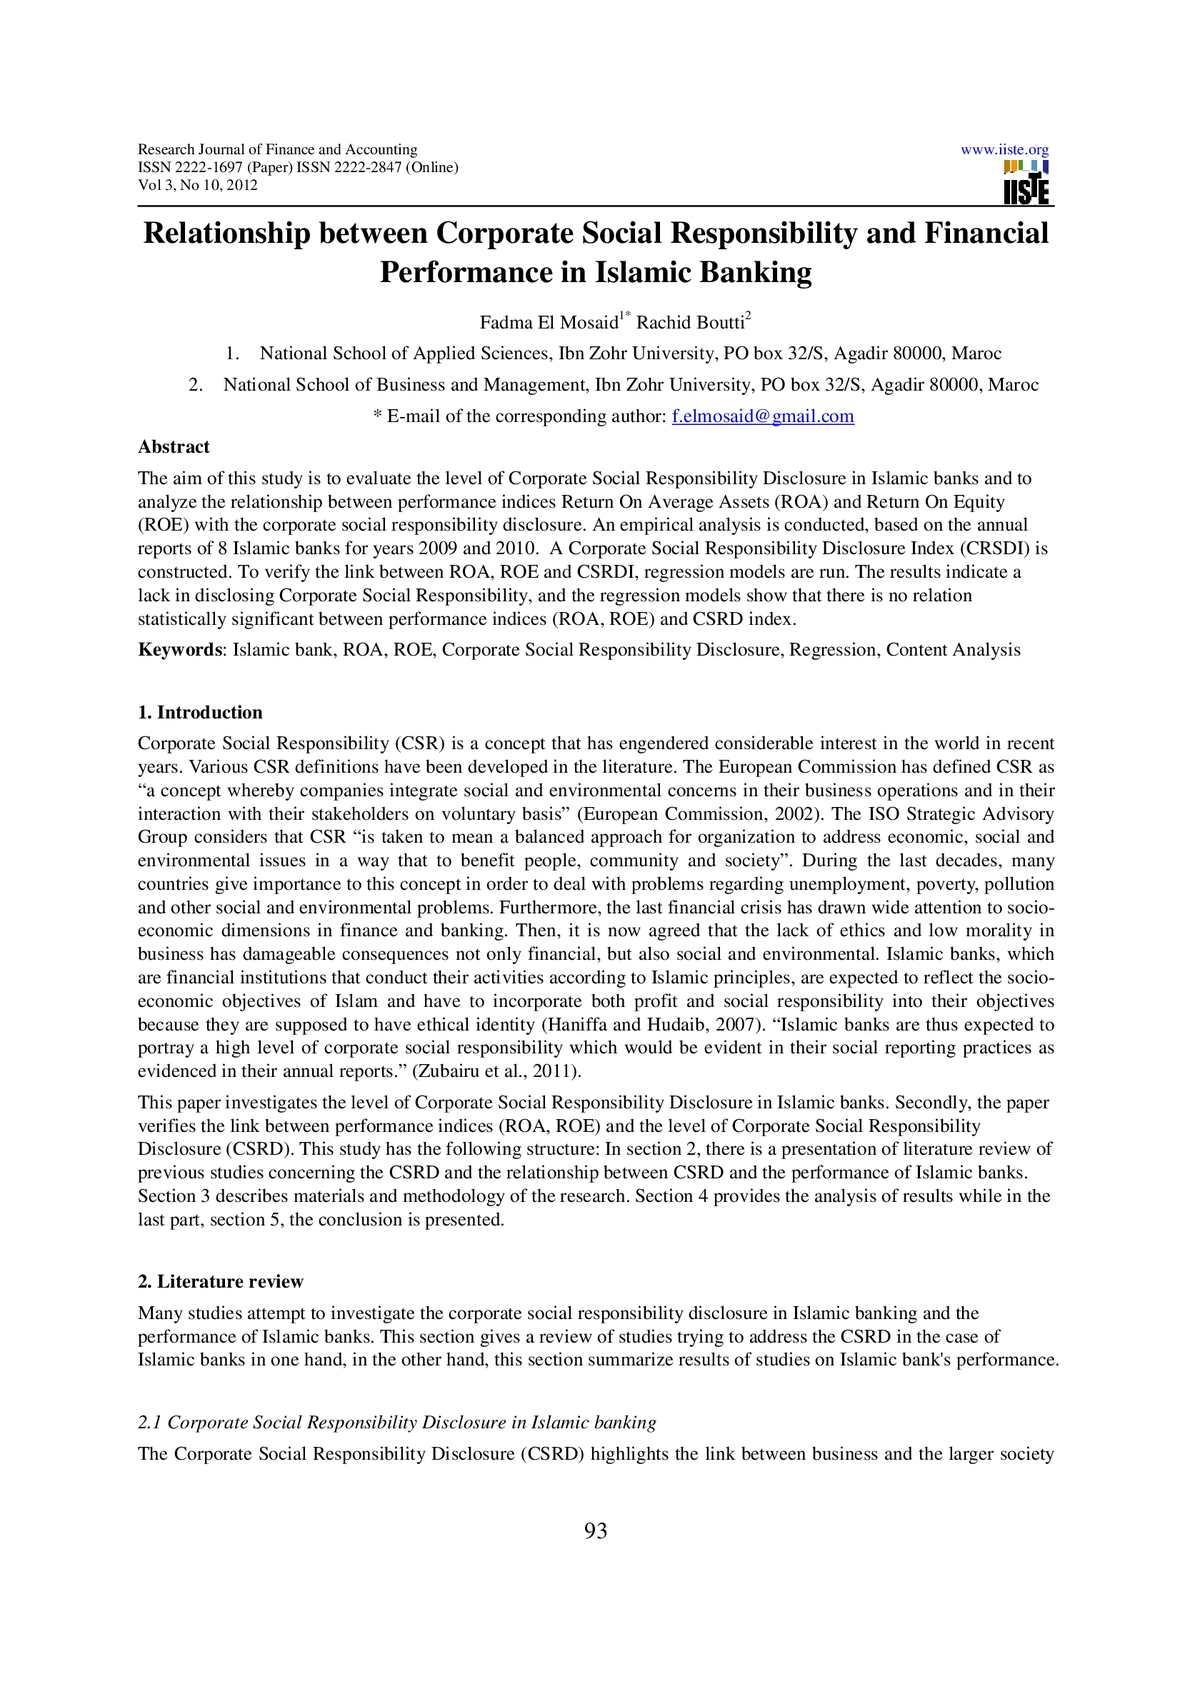 review of literature of financial performance